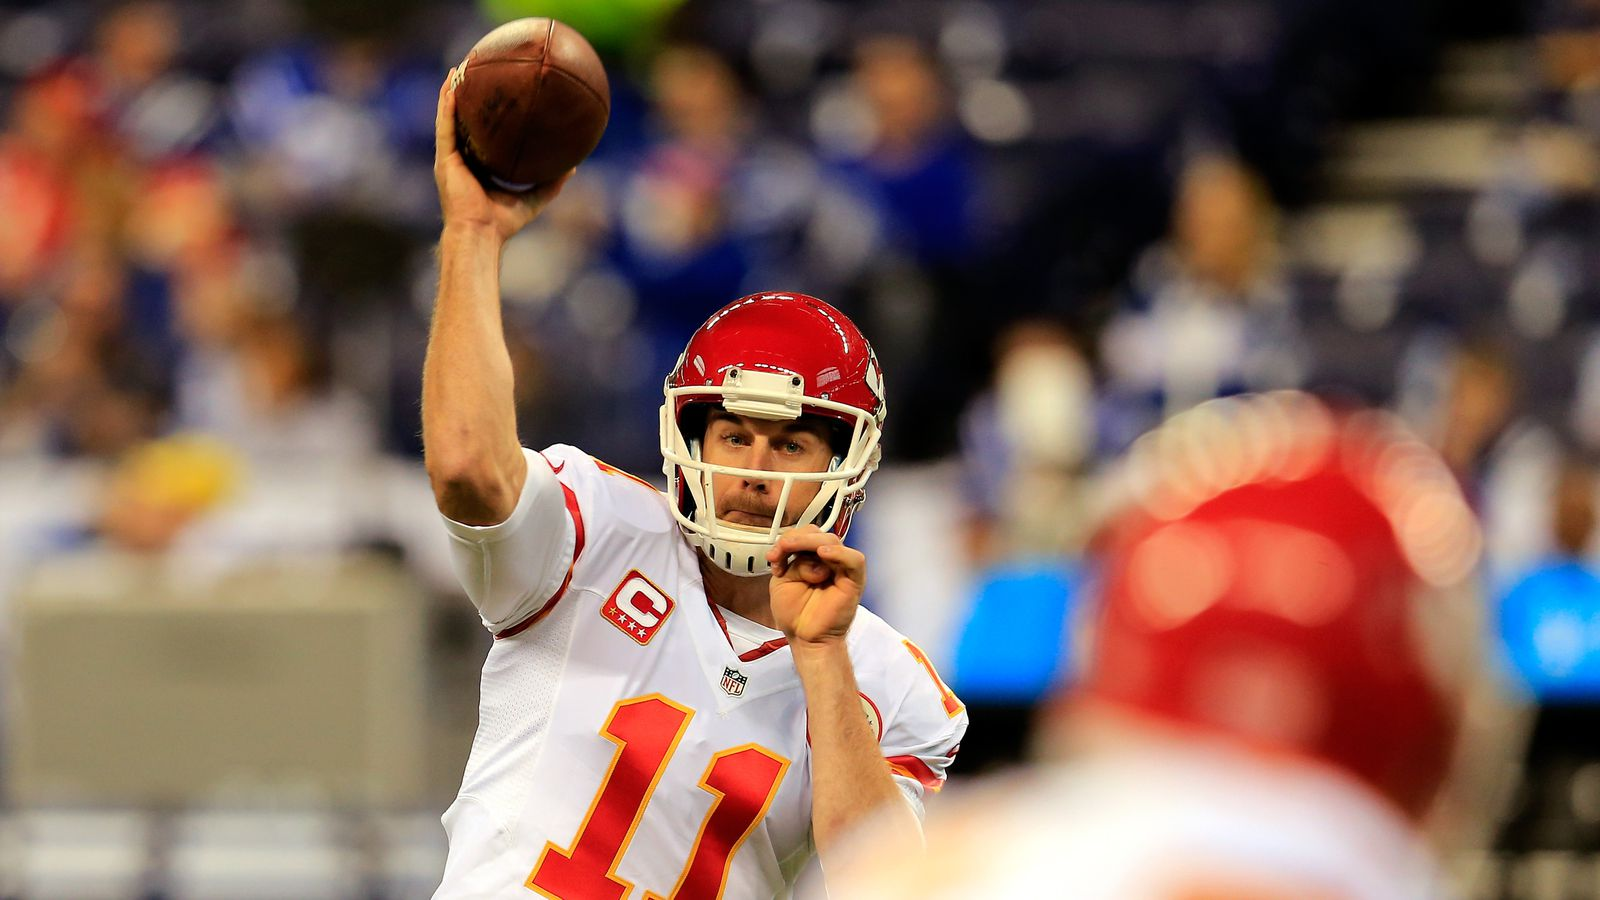 Rockets Vs Grizzlies >> Chiefs vs. Colts score update: Alex Smith throws 3 first